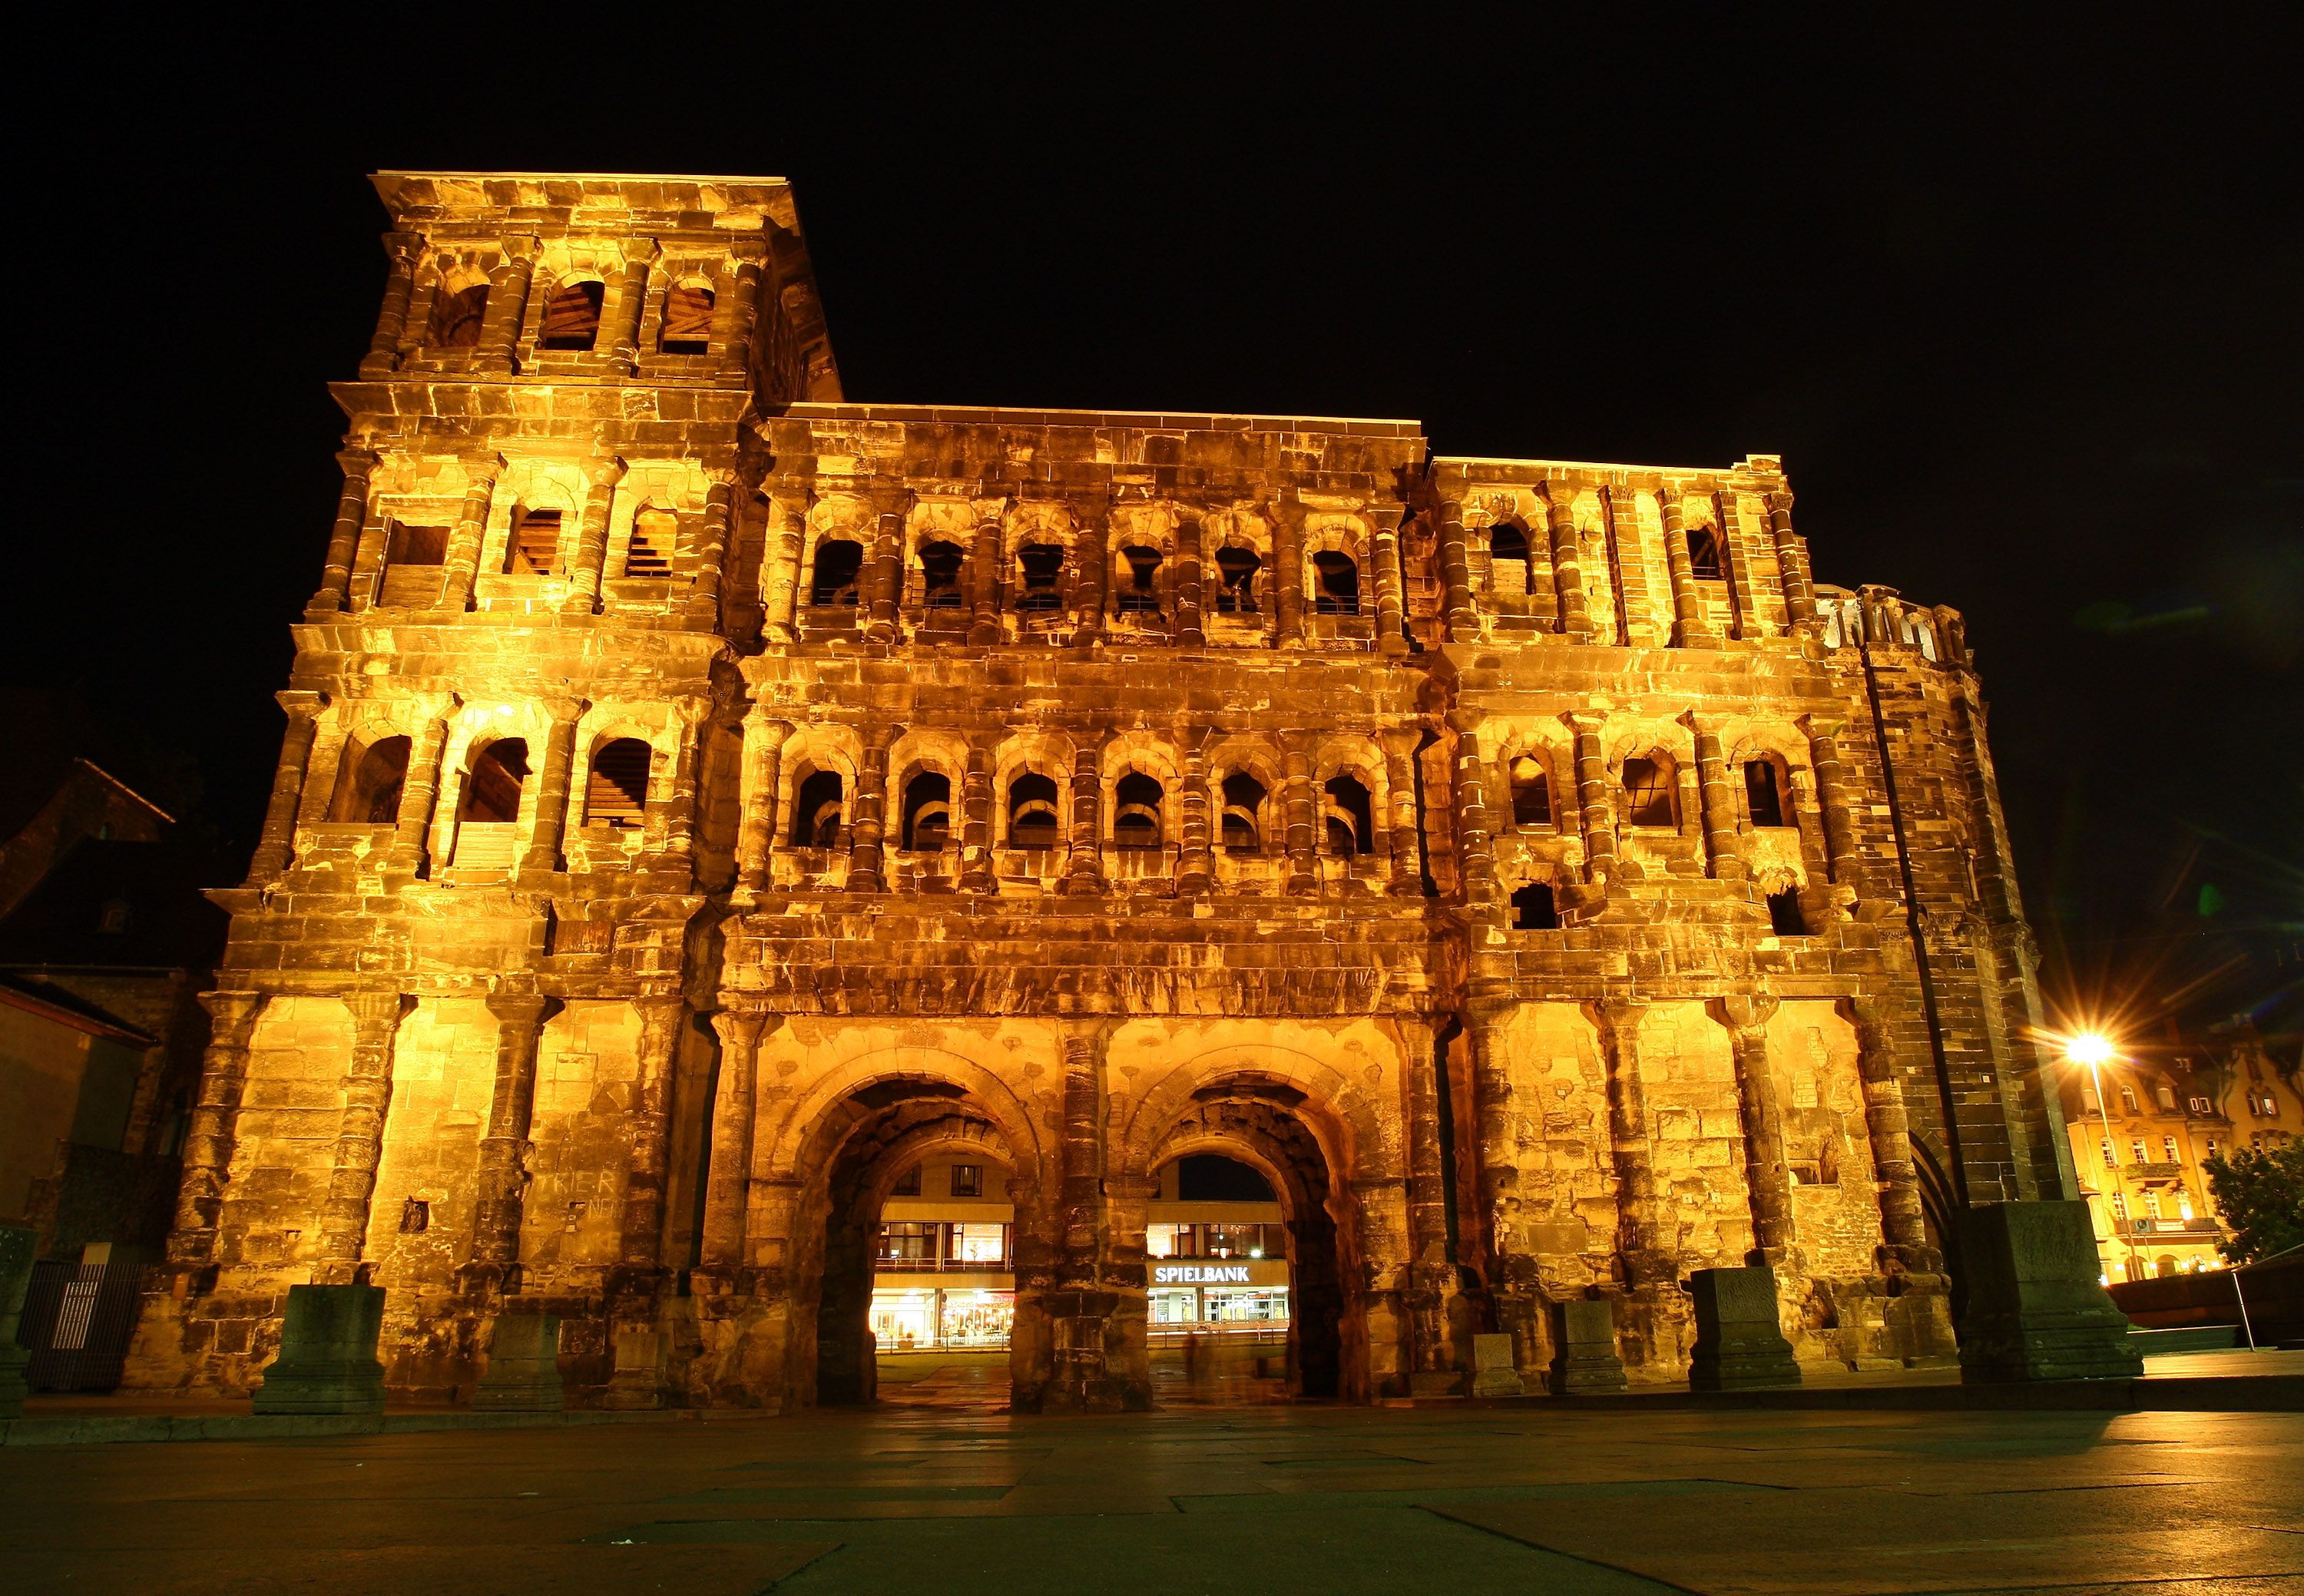 Trier Visit The Oldest City In Germany